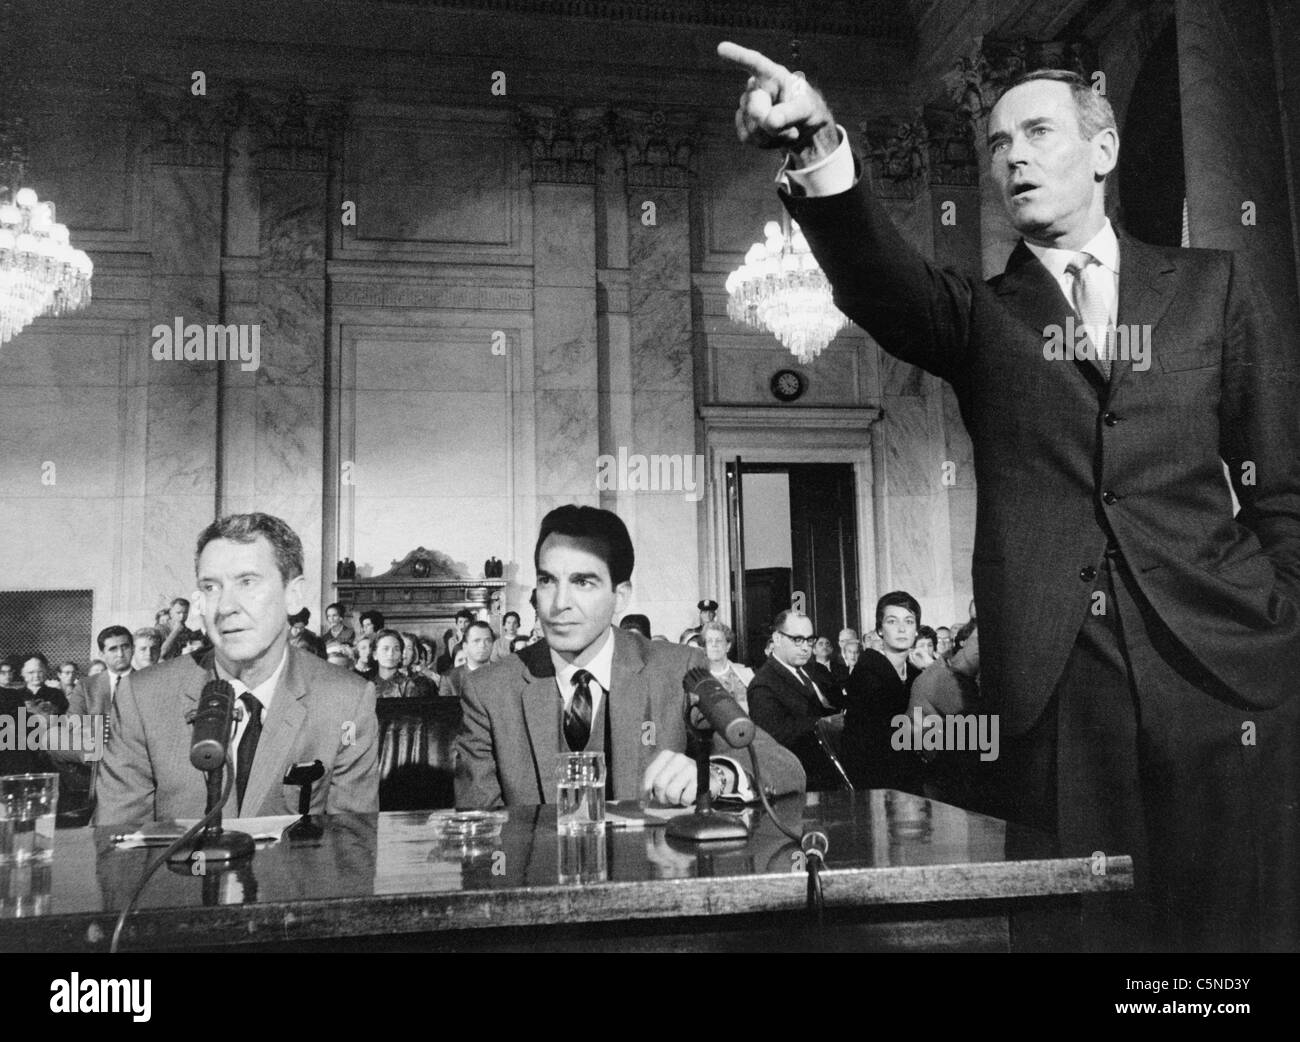 advise and consent, henry fonda, burgess meredith, paul stevens, 1962 - Stock Image